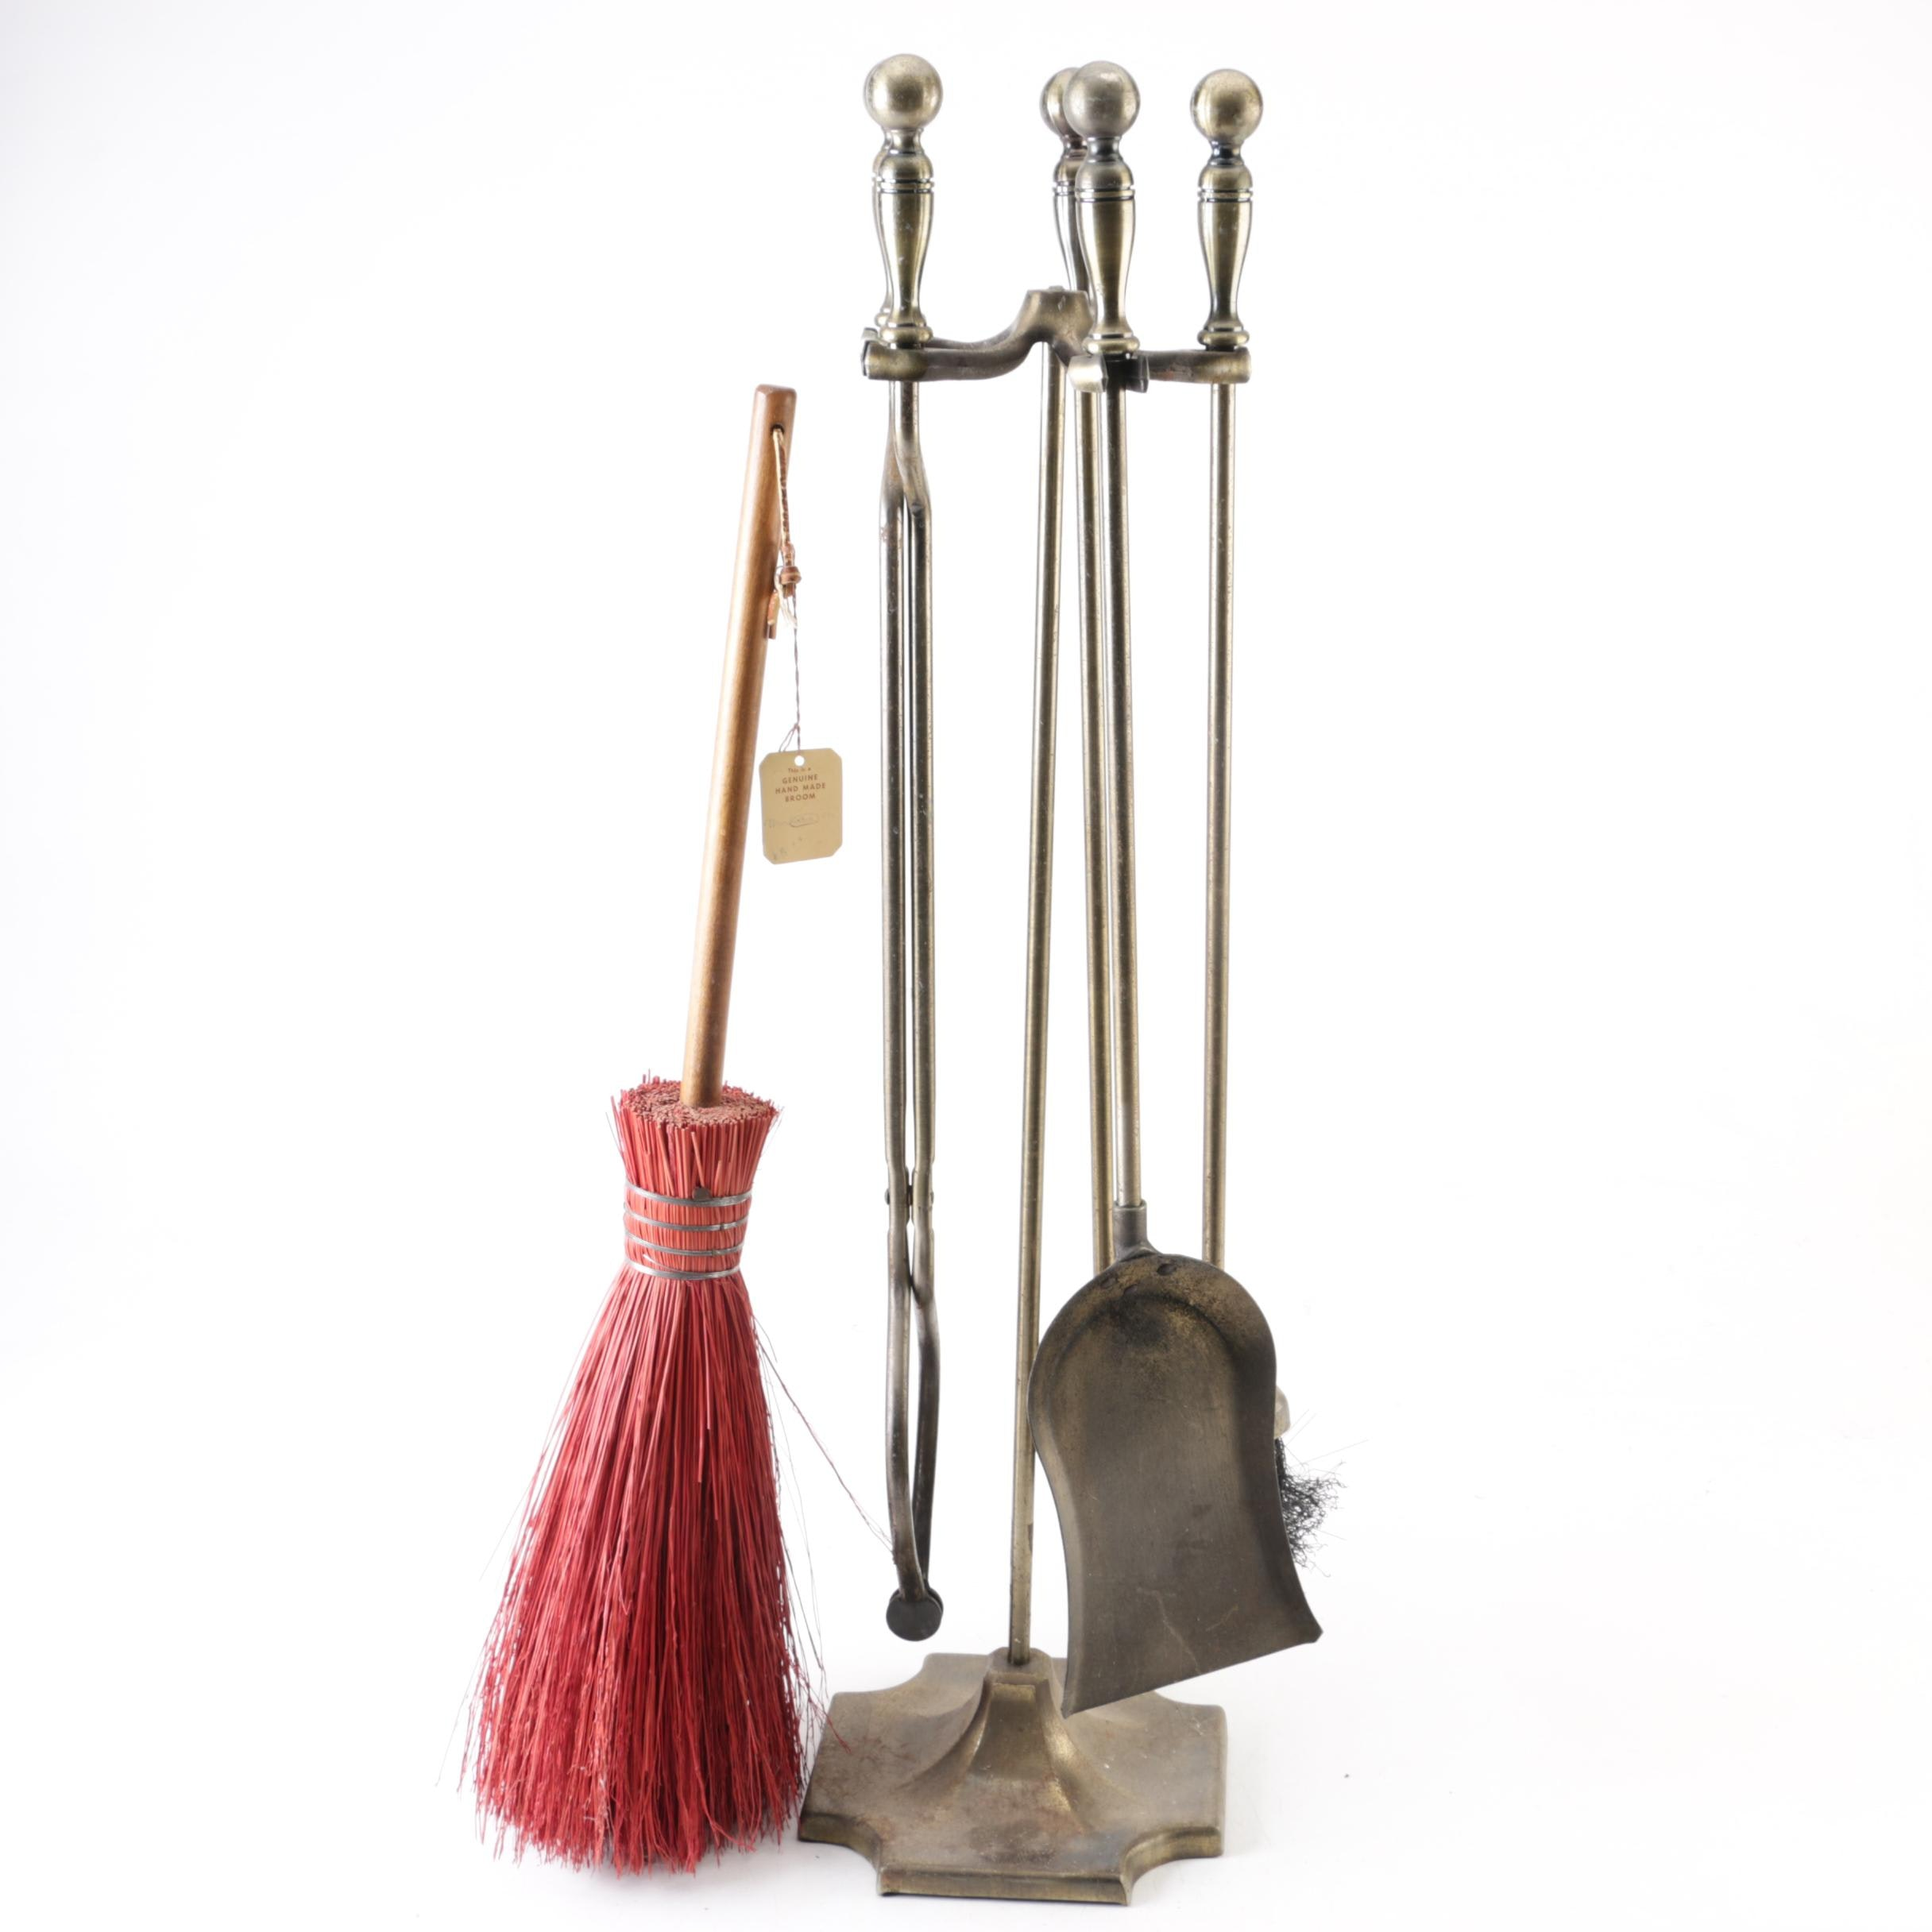 Fireplace Tools and Stand with Handcrafted Whisk Broom